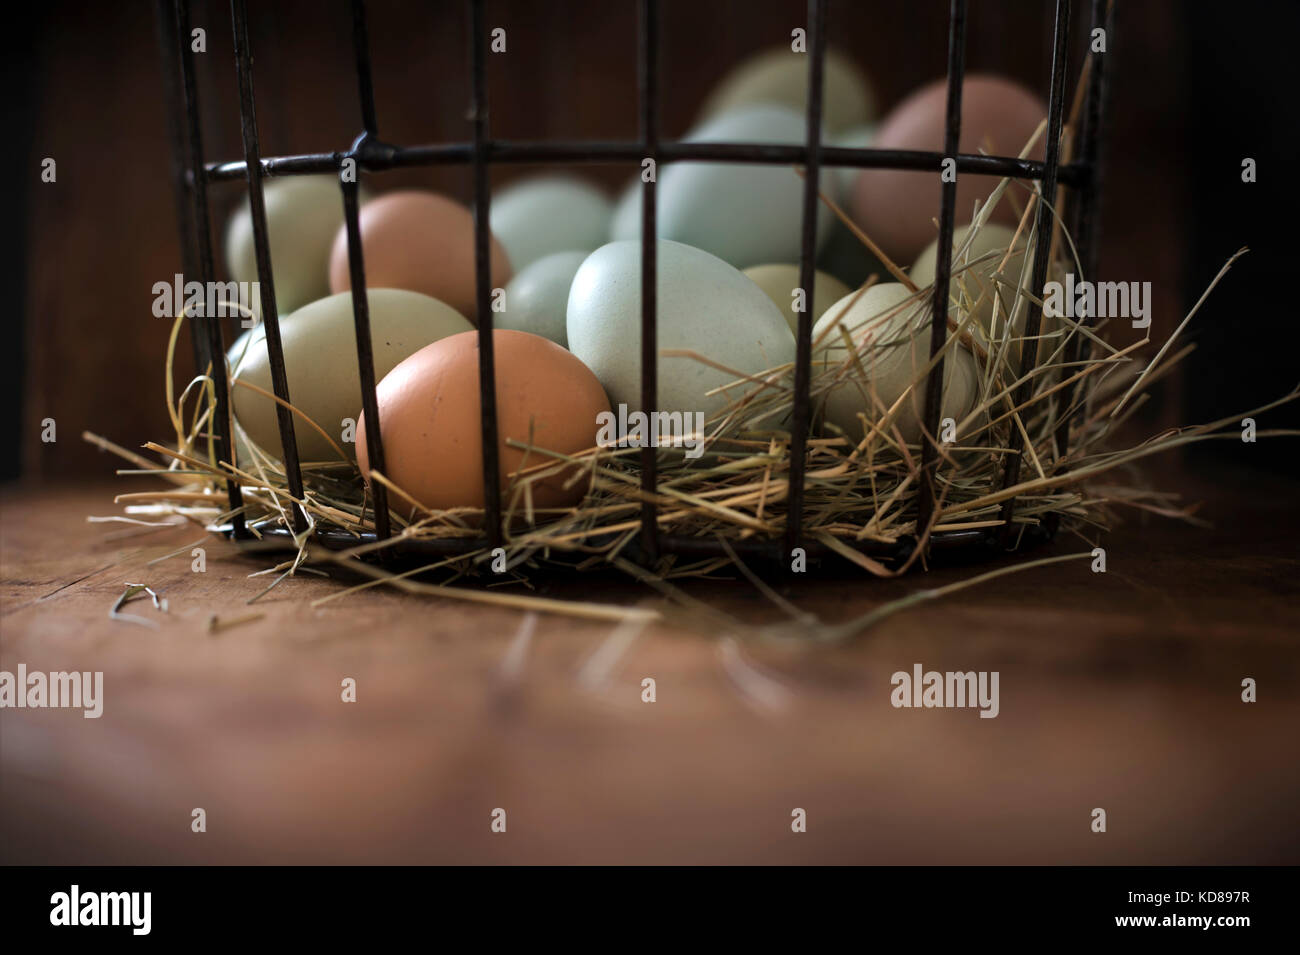 Fresh, multi-colored eggs in metal basket with hay on a rustic wood surface. - Stock Image